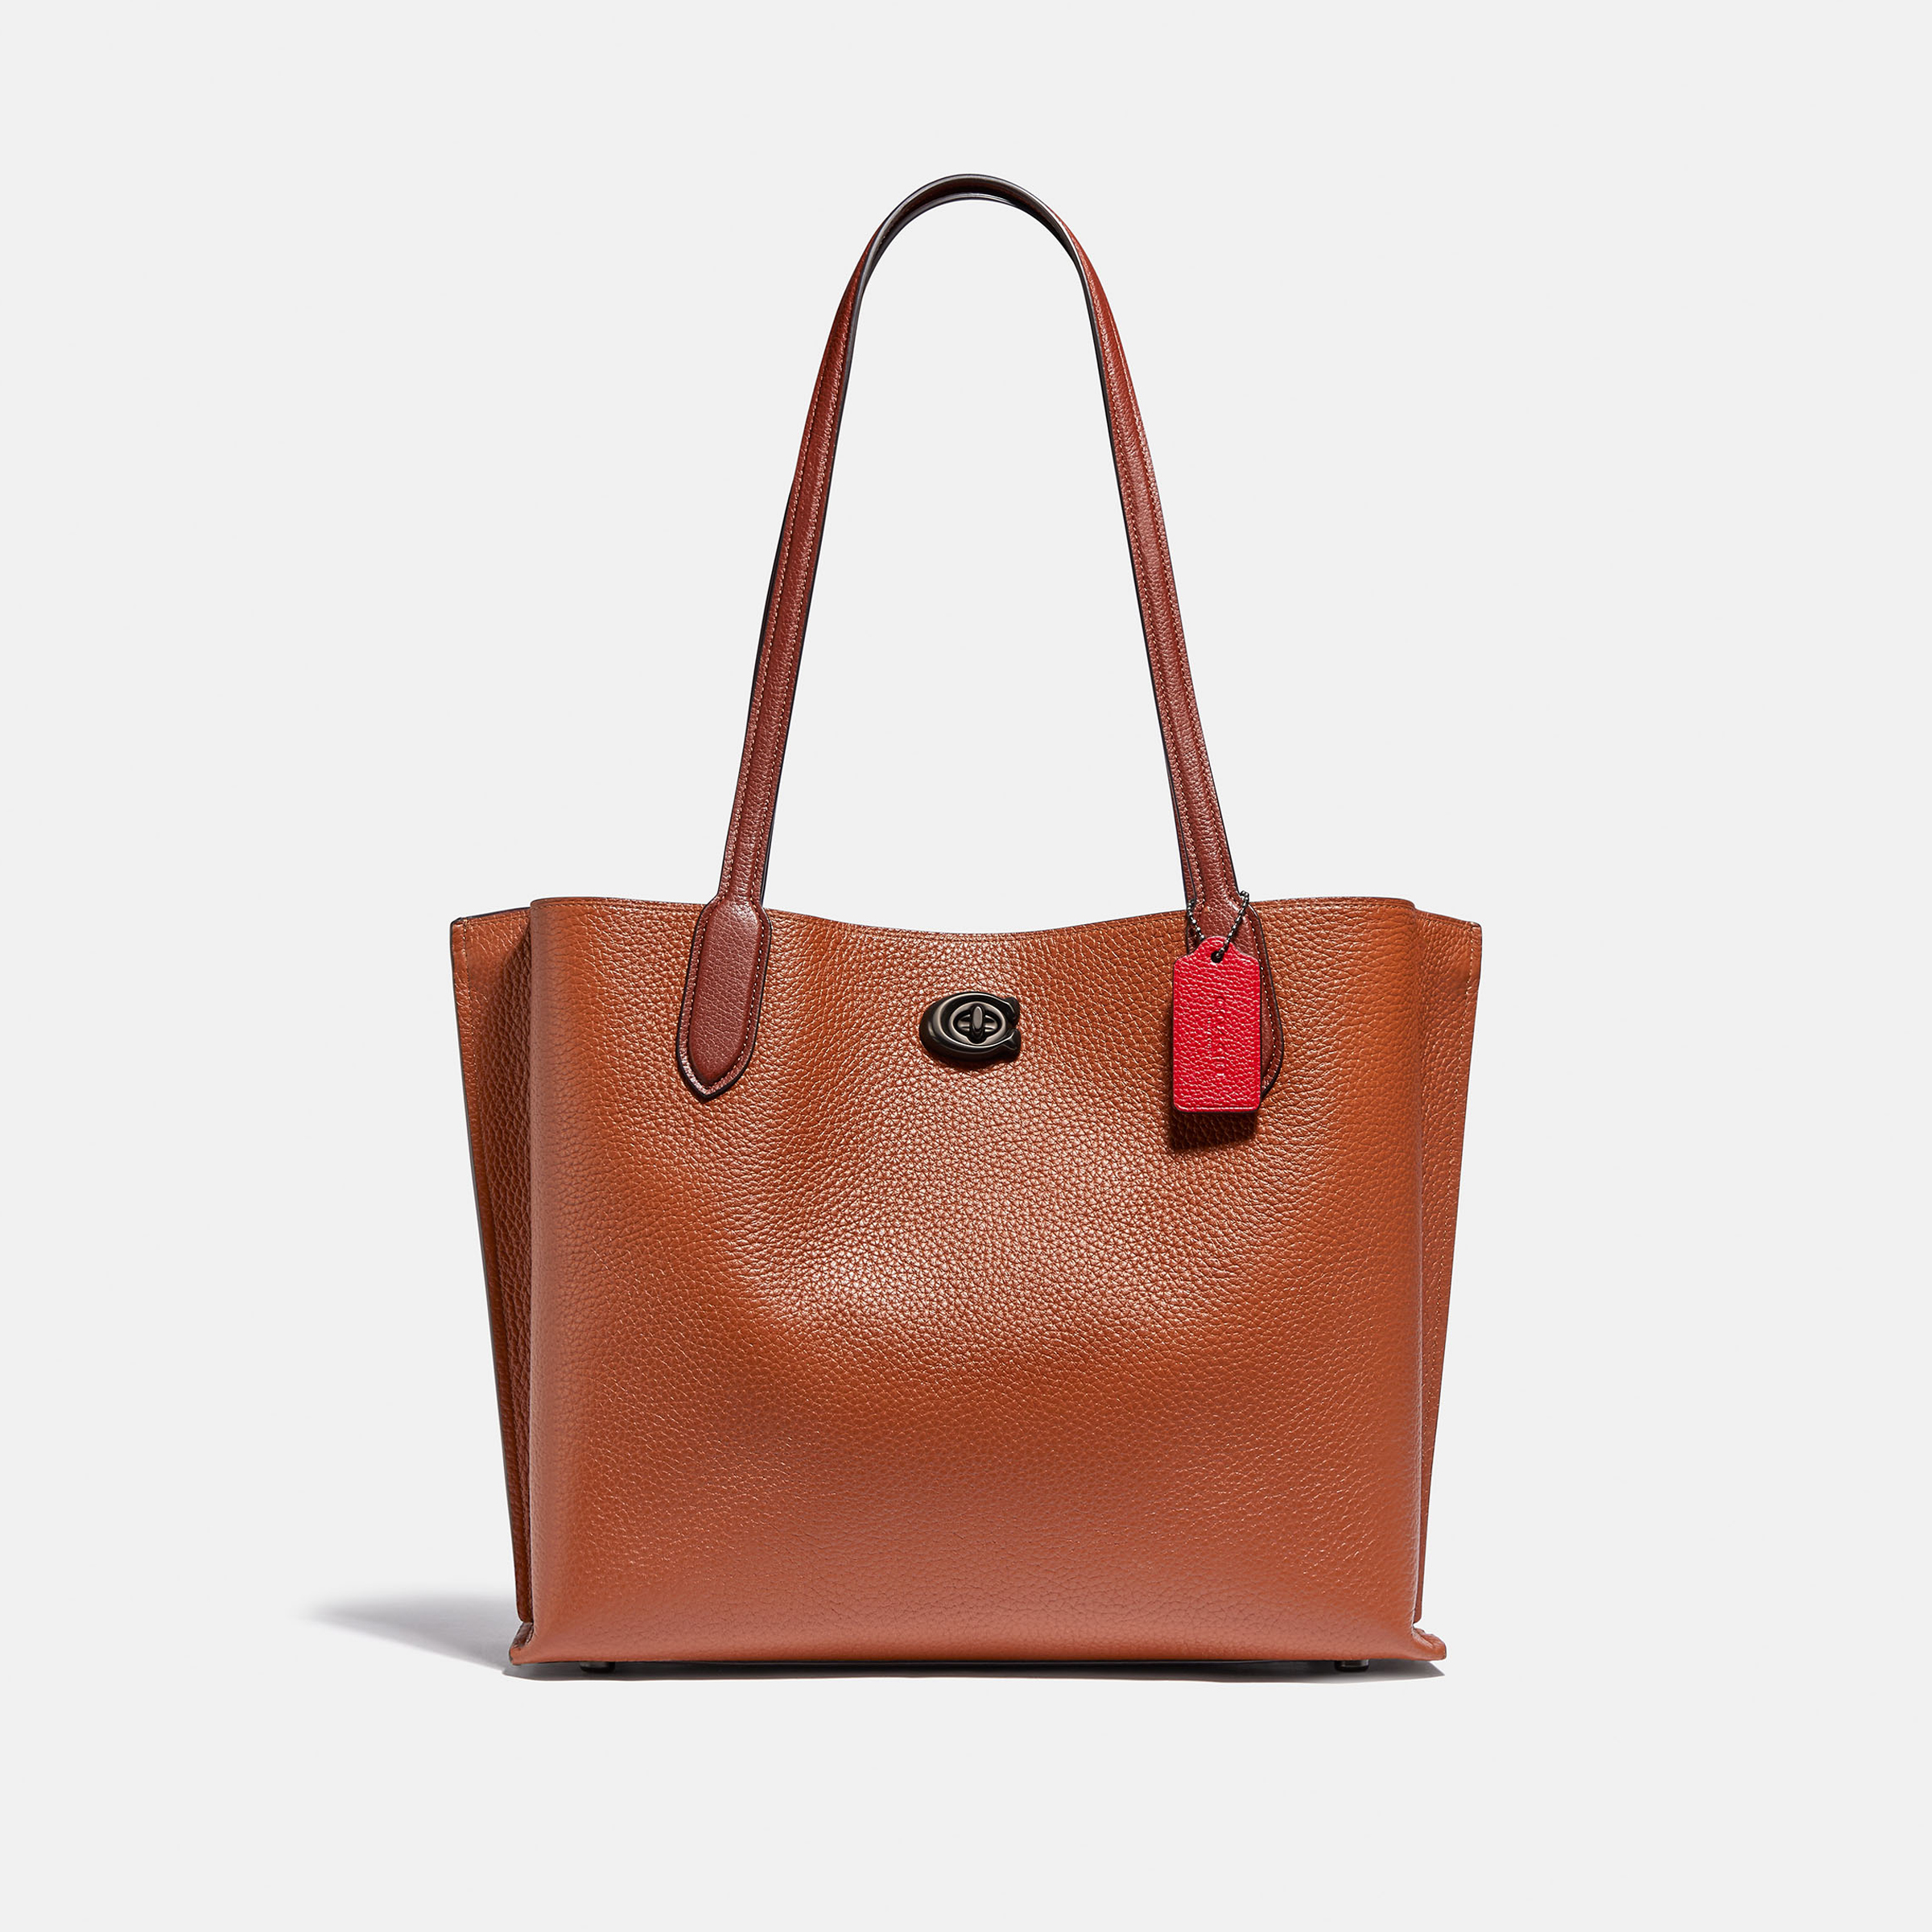 WILLOW TOTE SADDLE